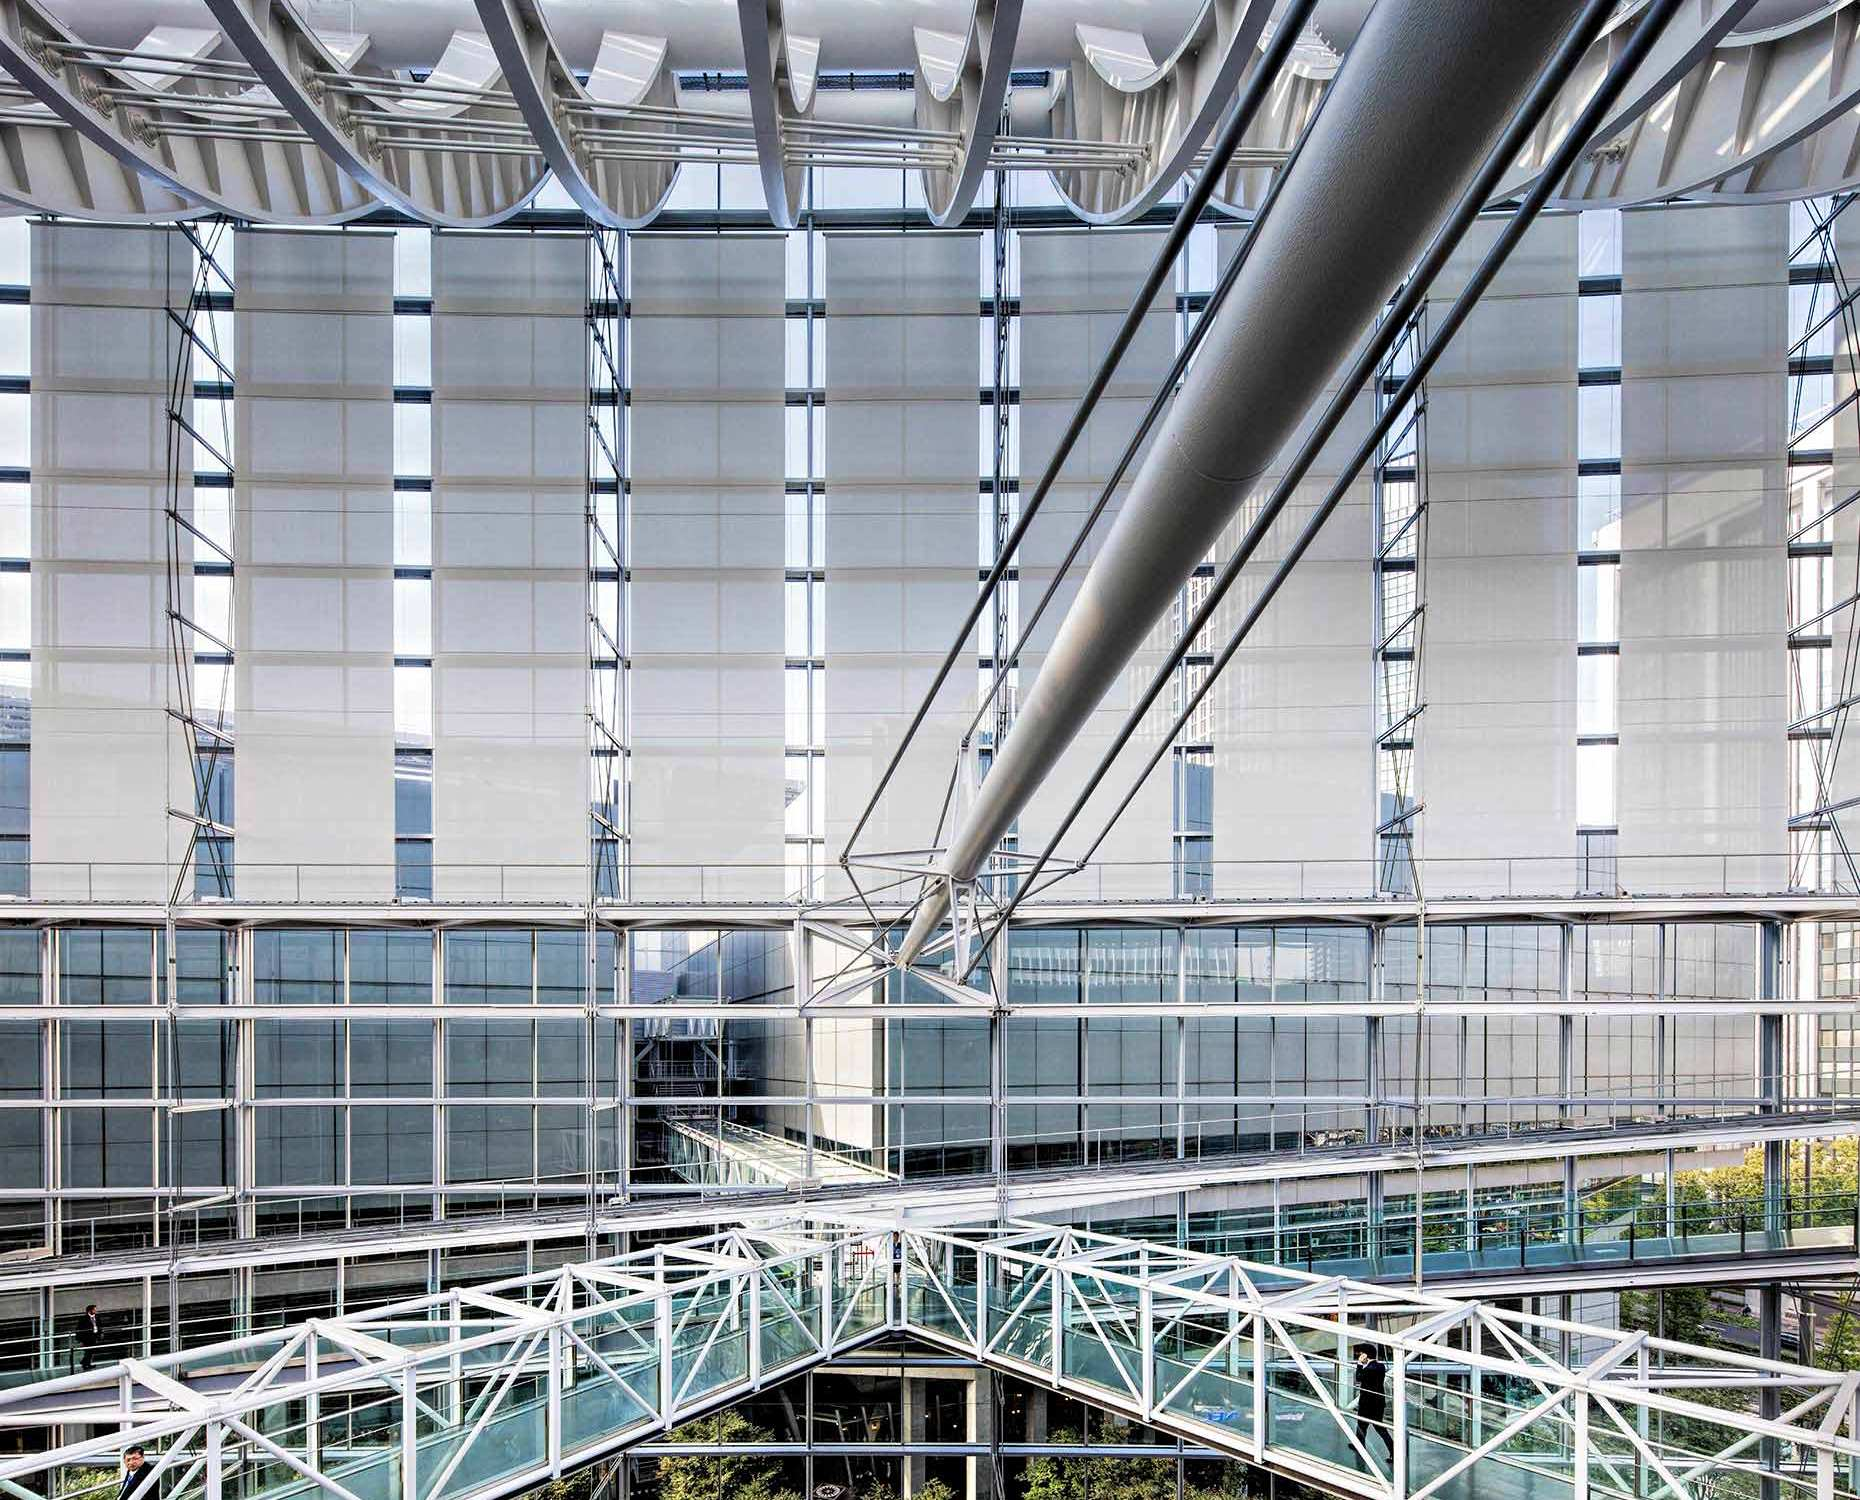 Interior view of the International Forum Building in Tokyo by Melbourne based commercial photographer Michael Evans © Michael Evans Photographer 2017